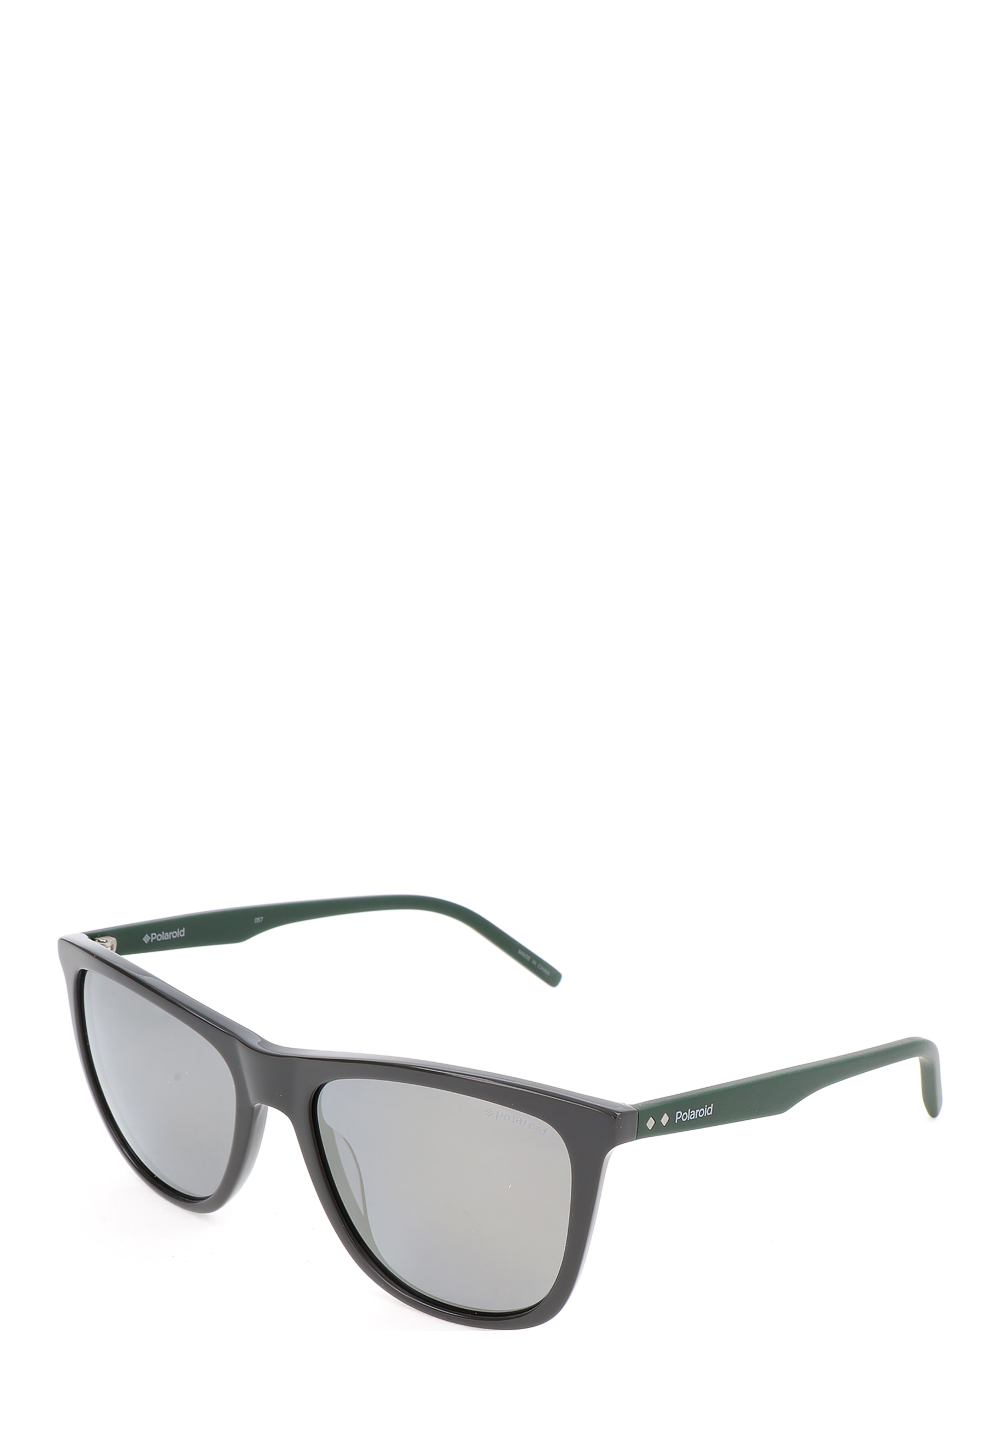 Sonnenbrille Pld2049/U/S, polarized, Uv400, grey grau